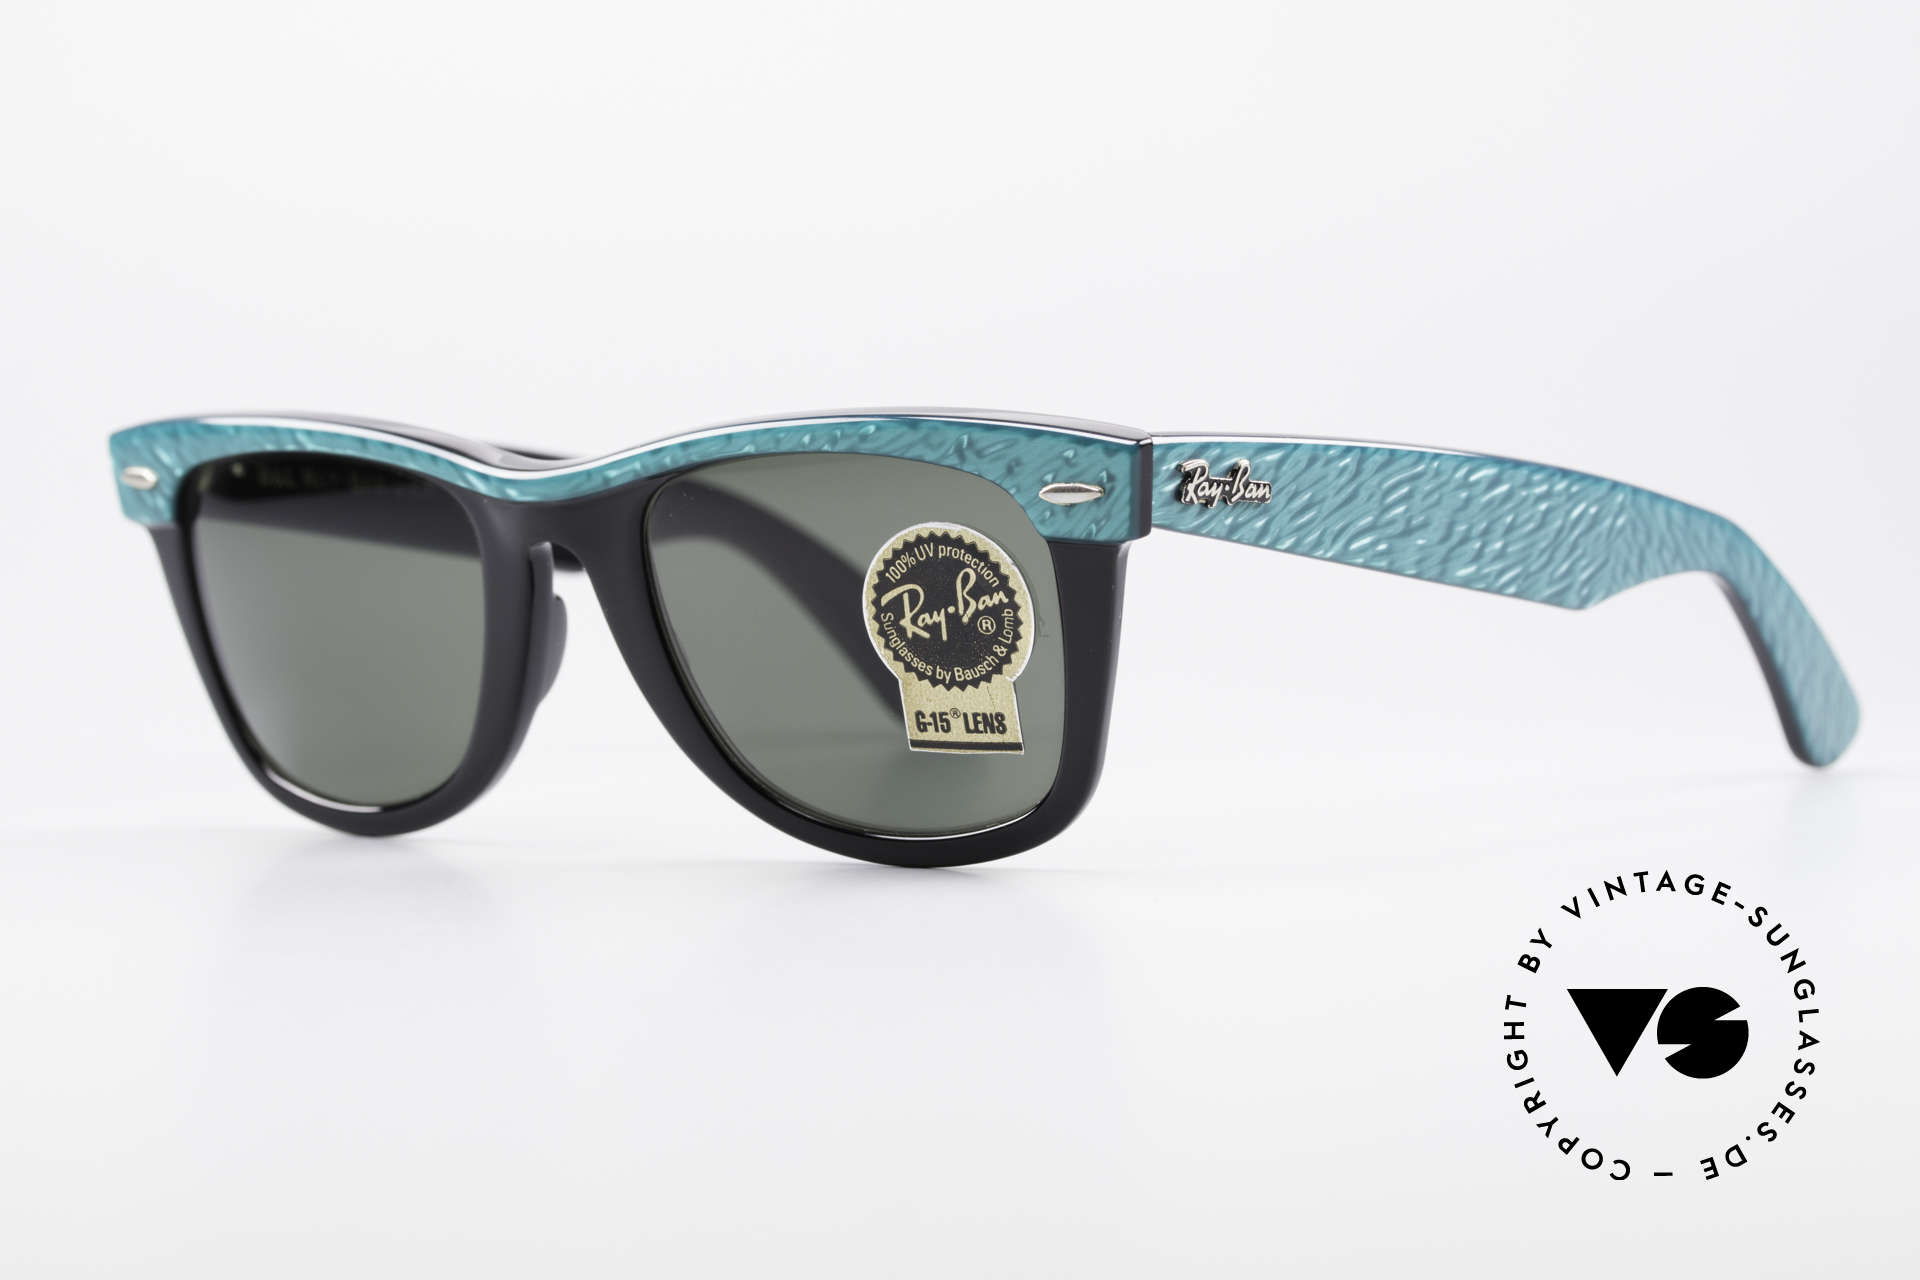 Ray Ban Wayfarer I Old 80's USA Sunglasses B&L, often copied, but never matched (simply a legend), Made for Men and Women